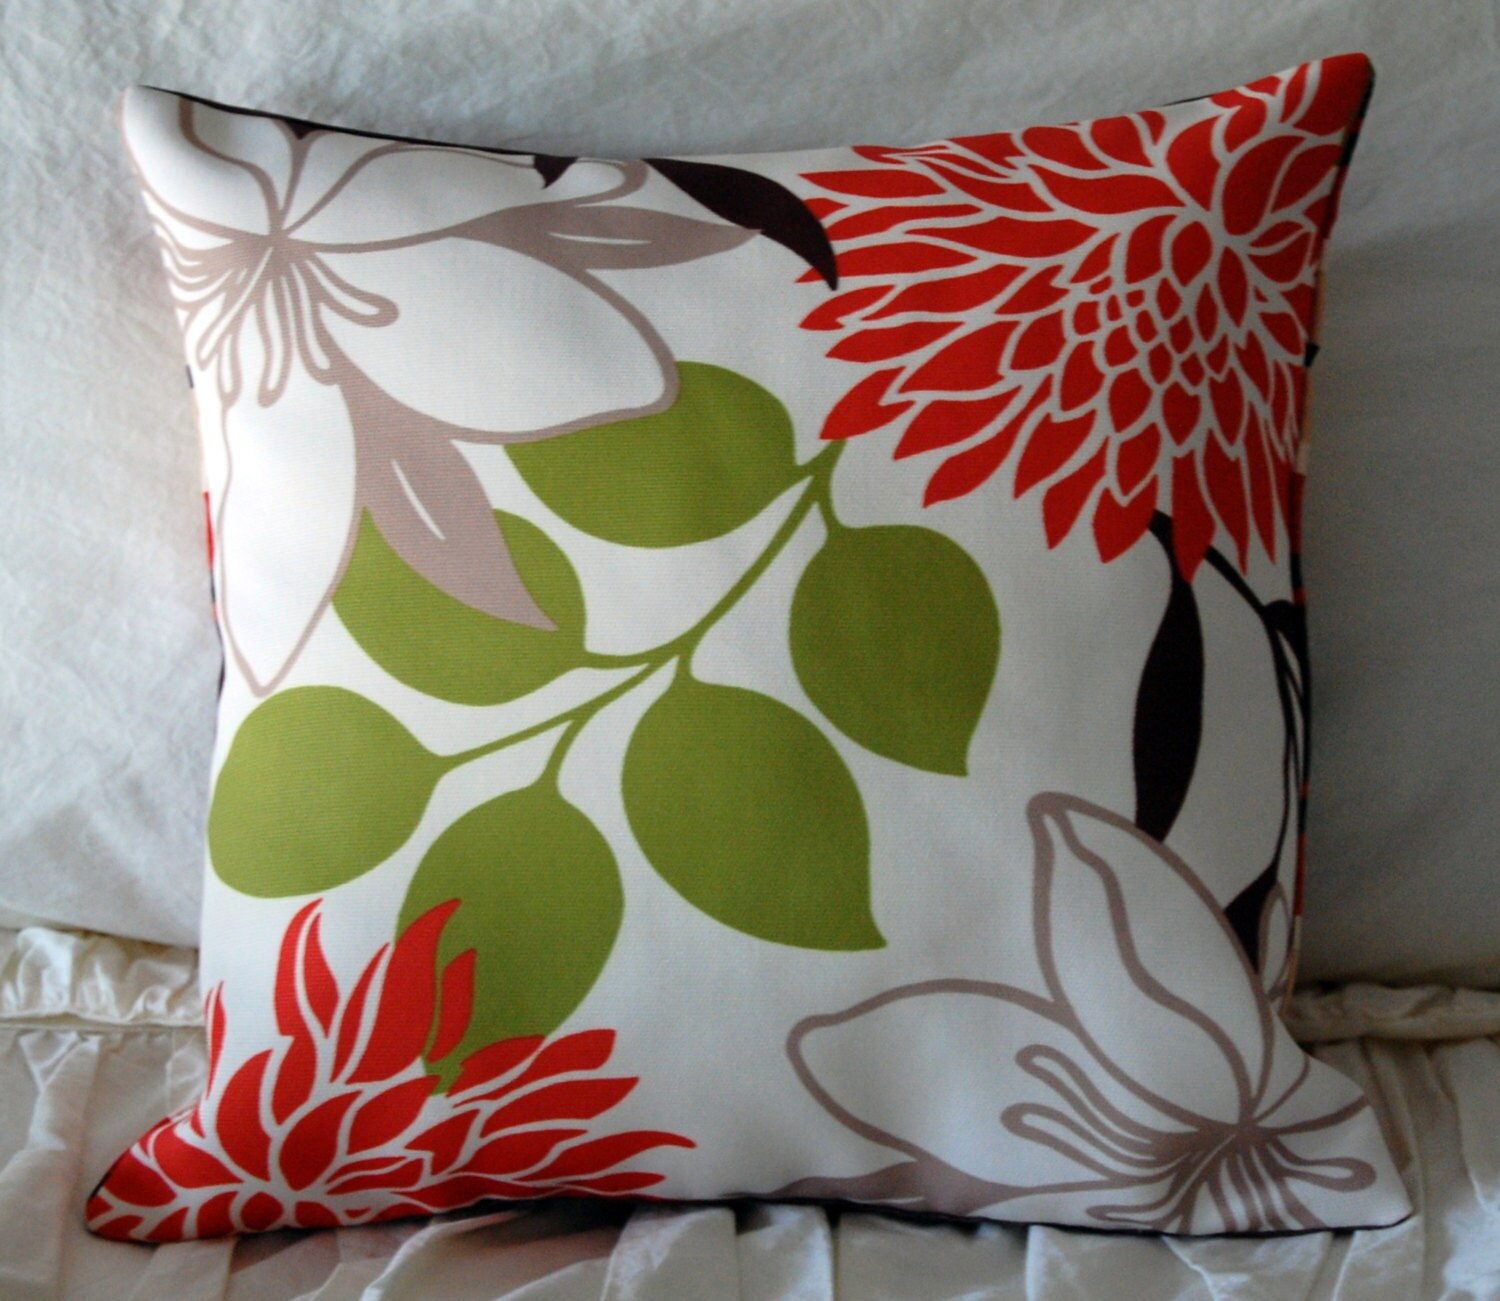 Modern Floral Pillow : Avora Modern Floral Pillow / abstract graphic bedding / earth